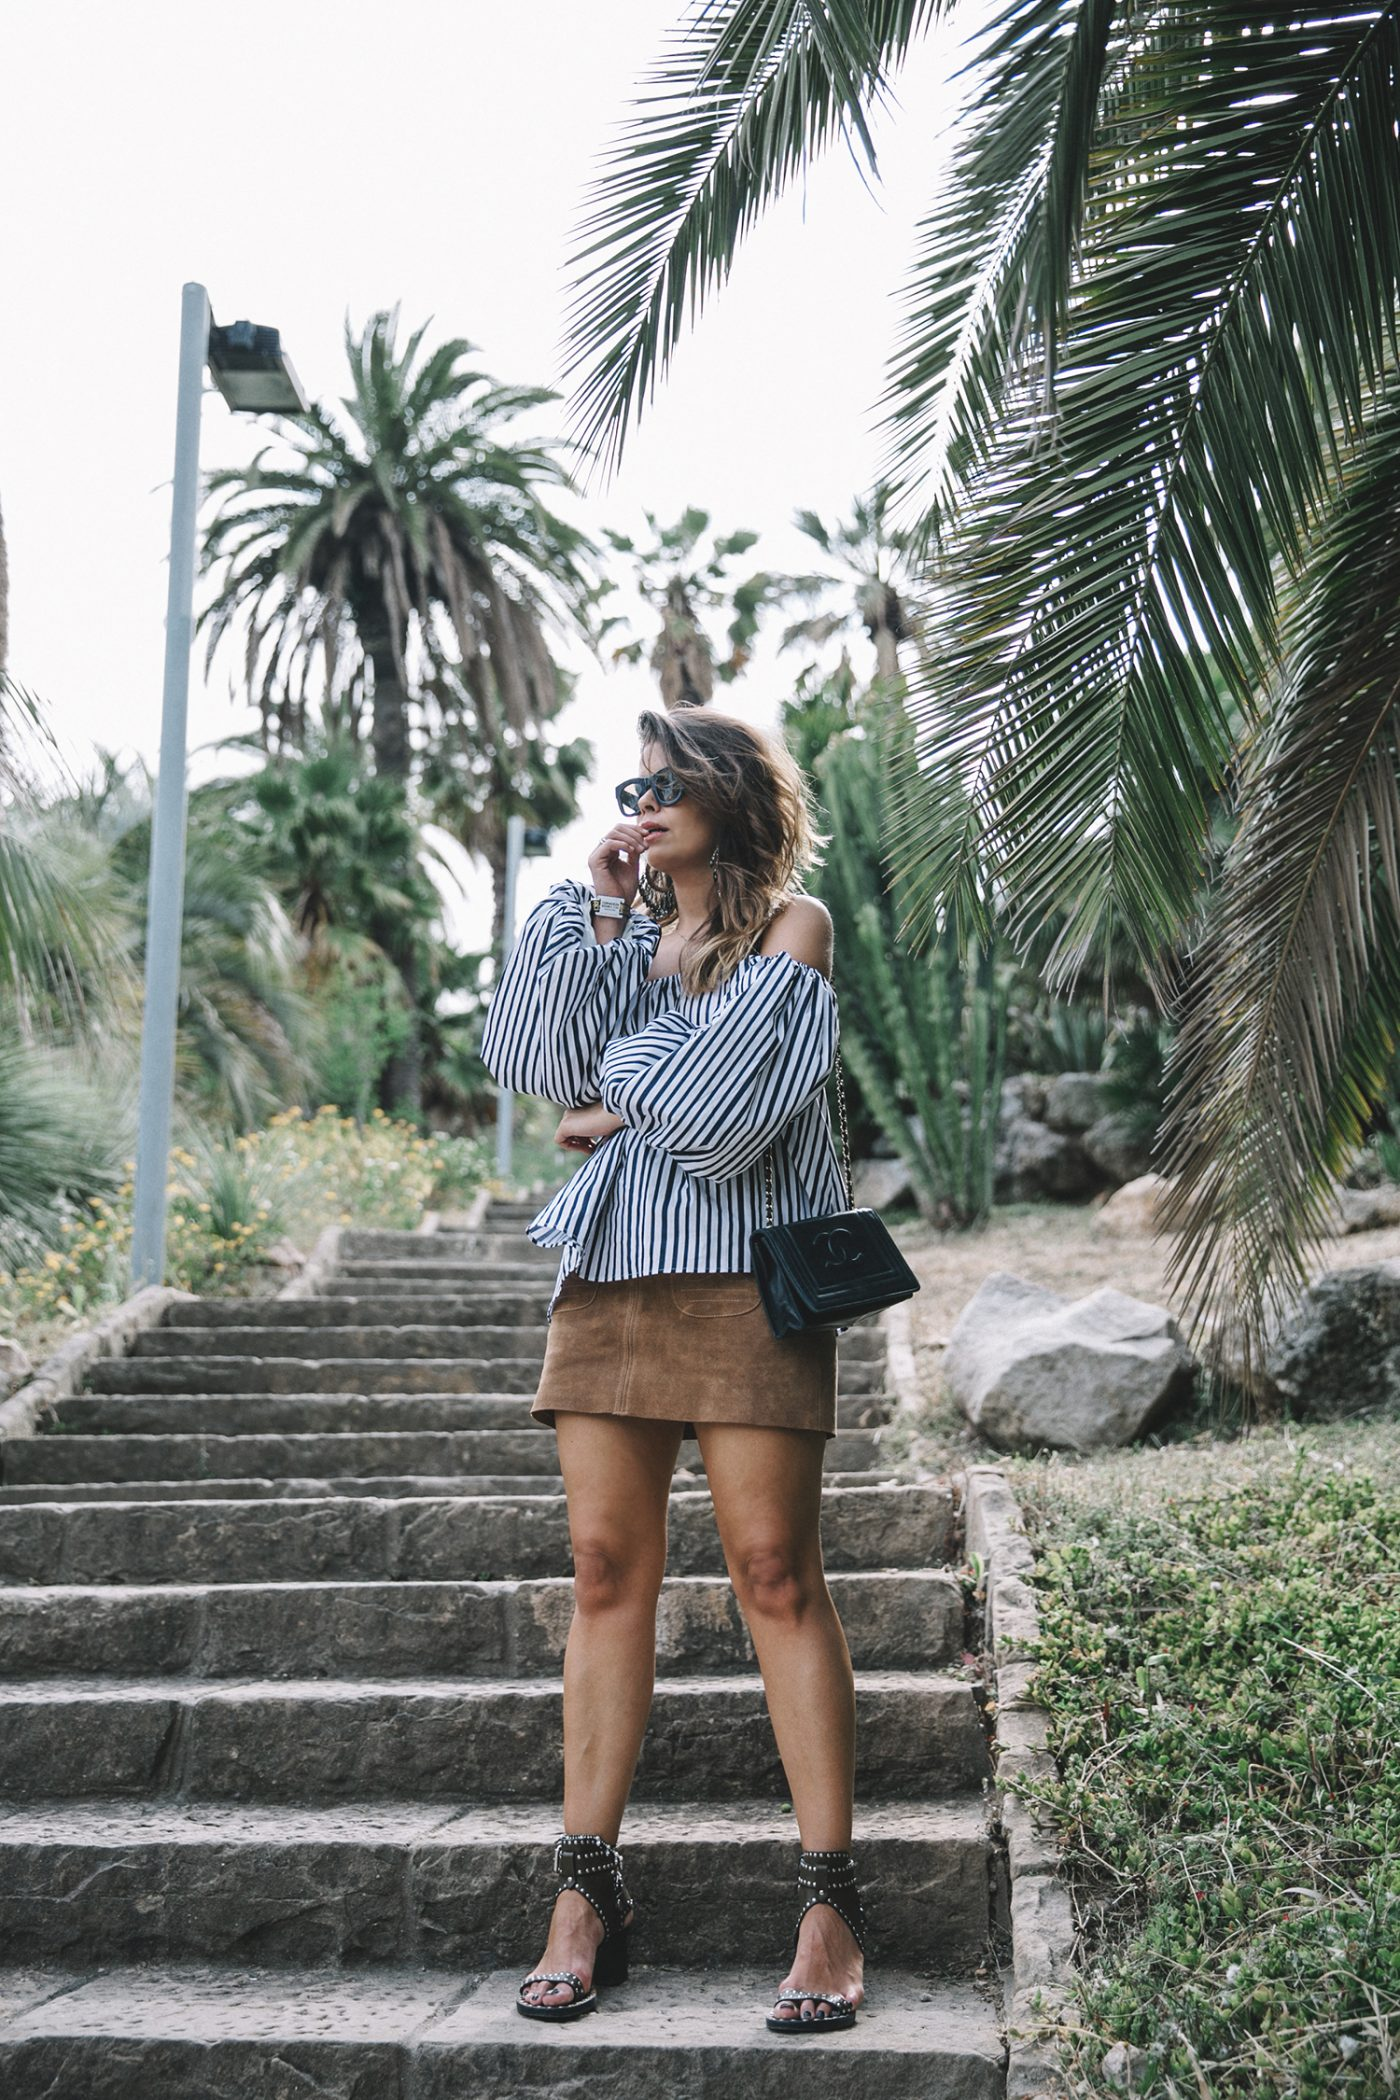 Chicwish-Off_The_Shoulders_Top-Outfit-Suede_Skirt-Free_People-Isabel_marant_Sandals-Chanel_Vintage_Bag-Statement_Earrings-Boho-Collage_Vintage-36